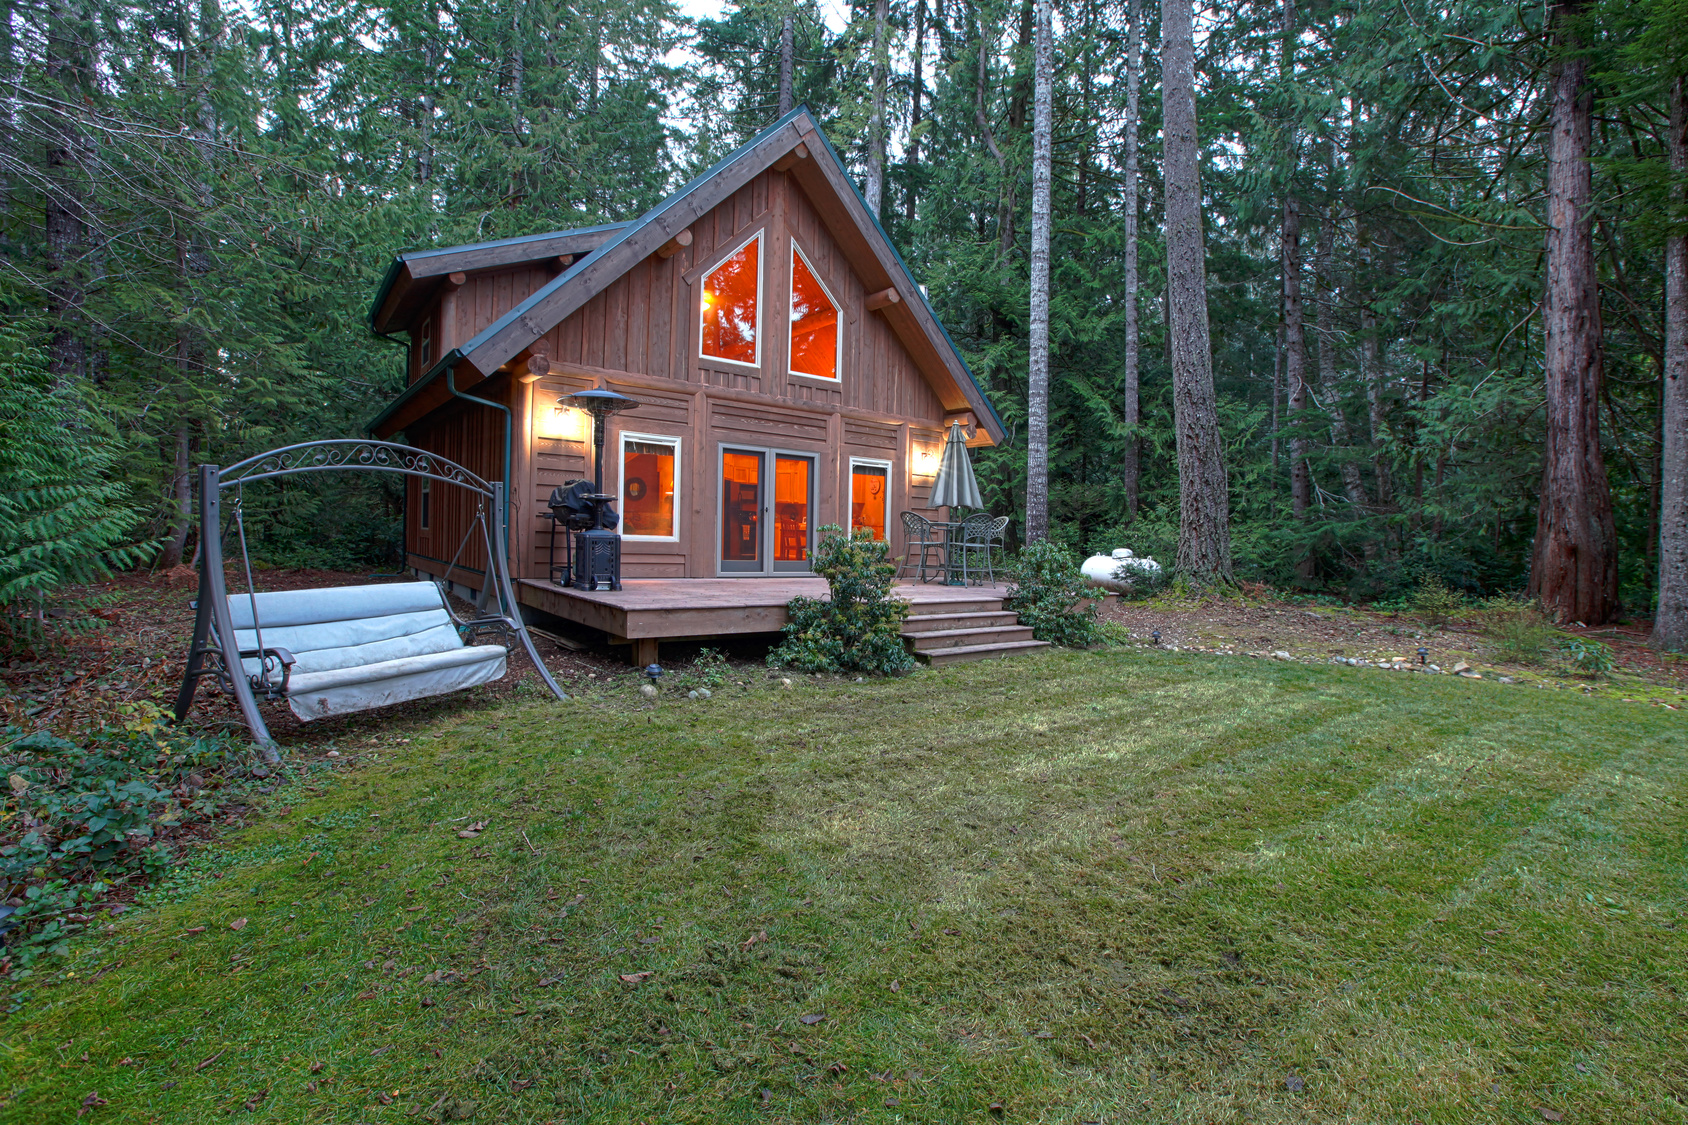 mountain cabin at rentals smoky front nine mountains cabins bears in forge dream large gatlinburg pigeon vacations